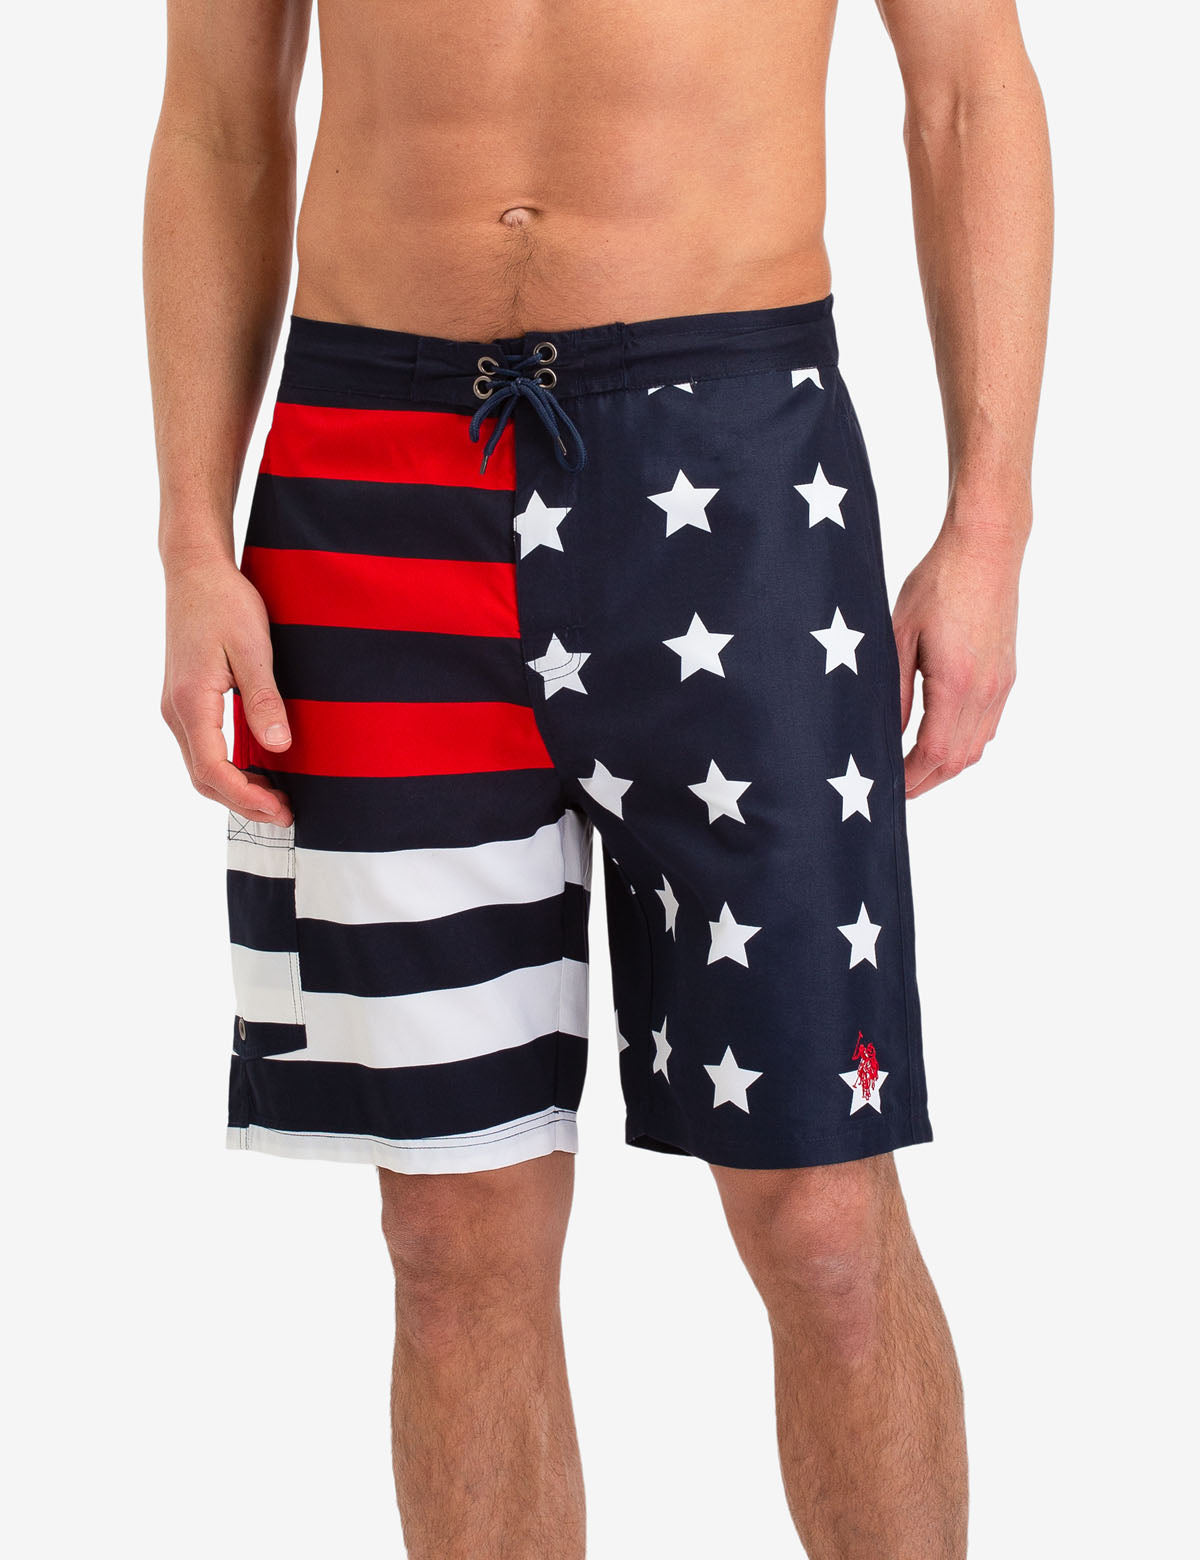 USA FLAG SWIM TRUNKS - U.S. Polo Assn.